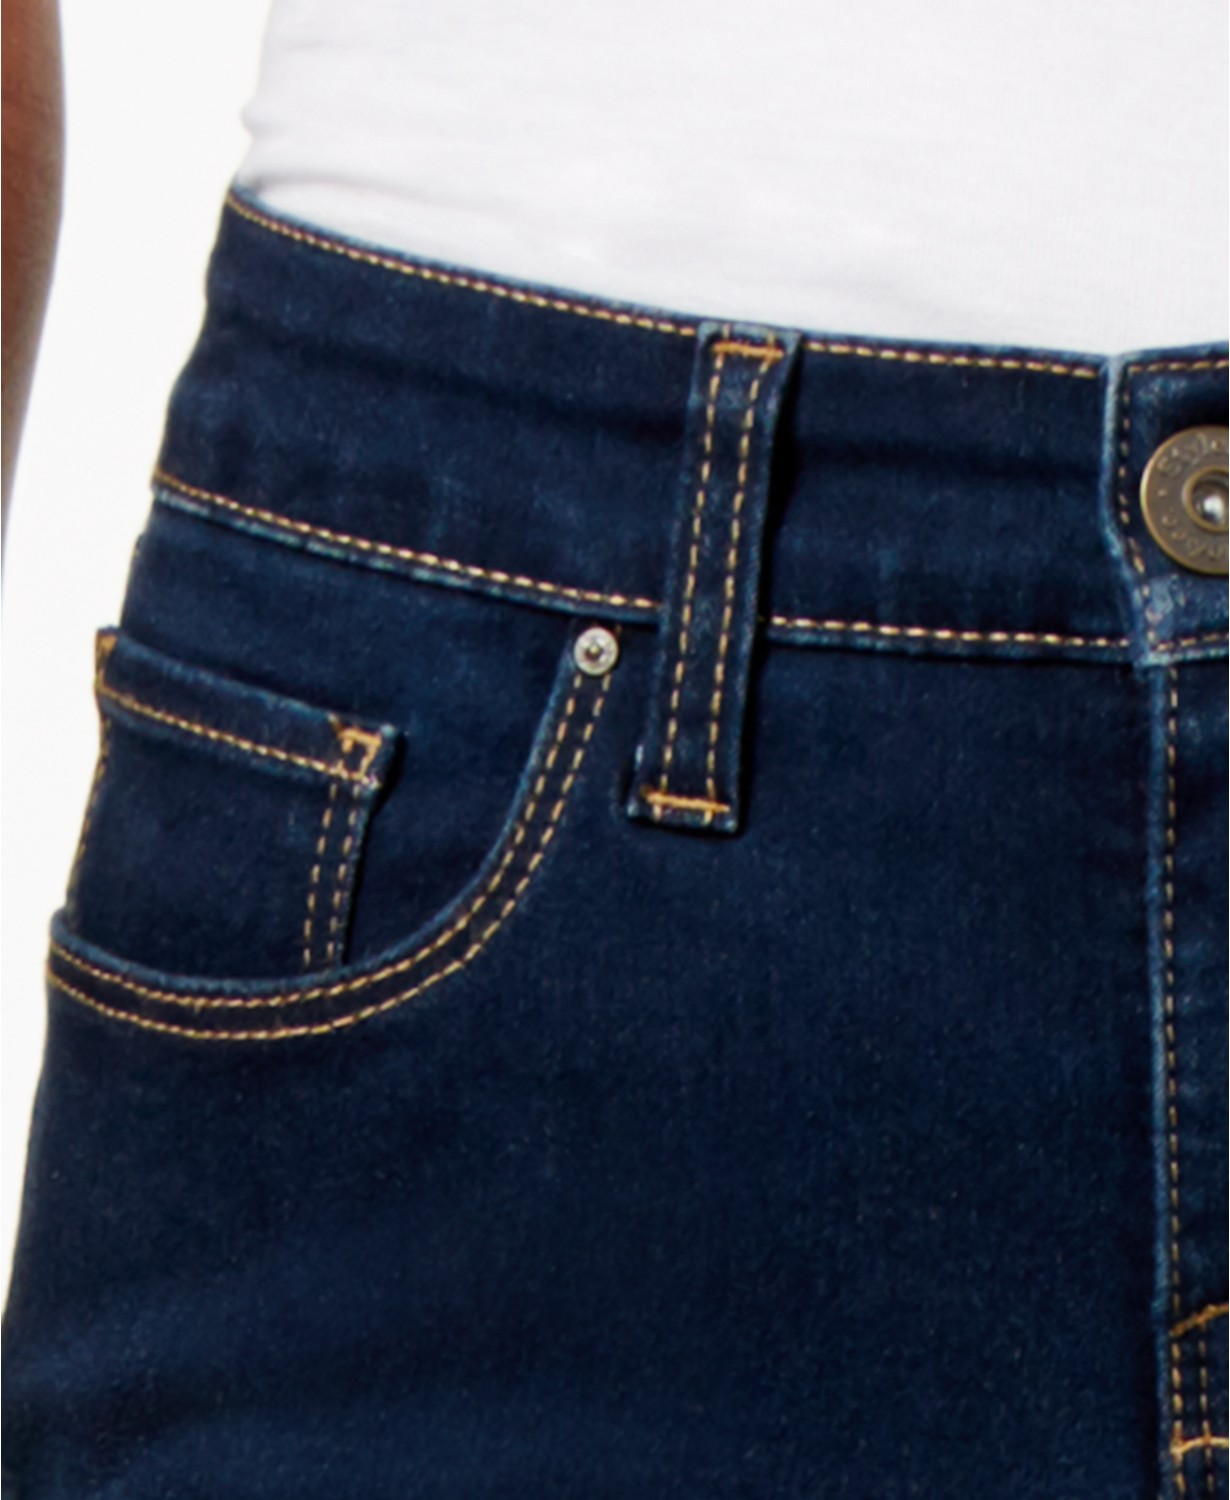 https://www.macys.com/shop/product/style-co-curvy-fit-skinny-jeans-created-for-macys?ID=9518616&CategoryID=10066&swatchColor=Wave